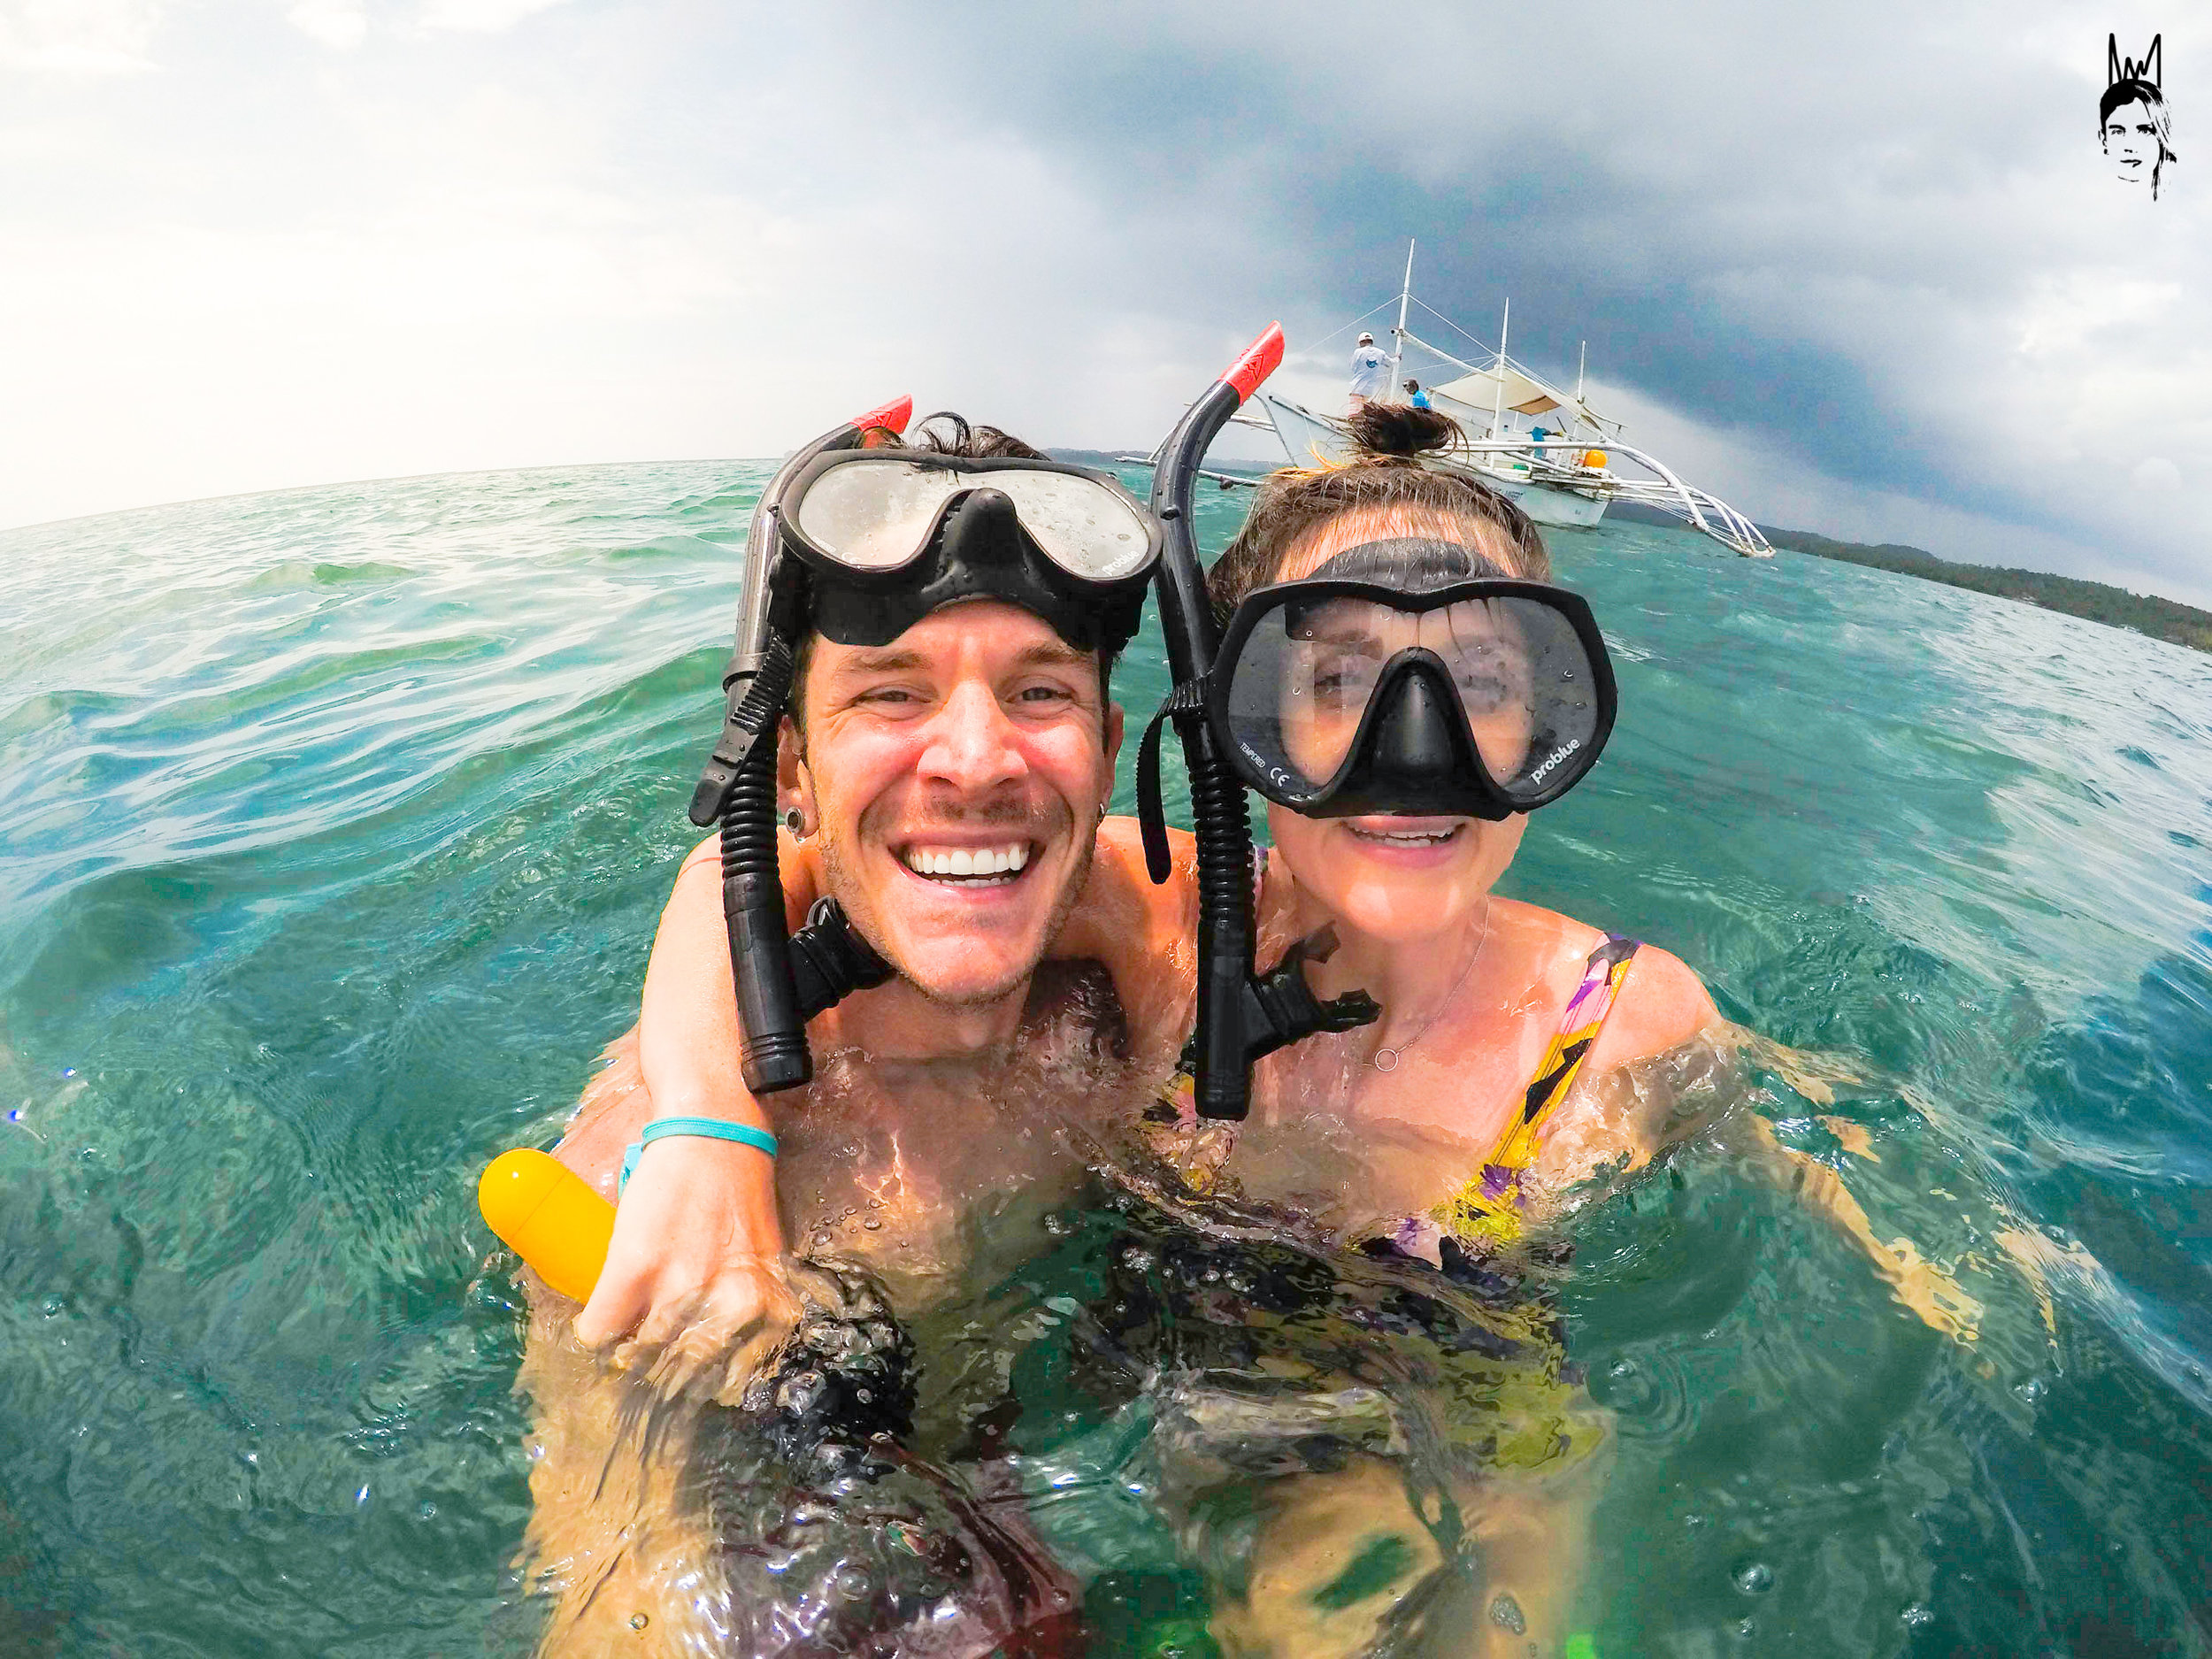 Happiest kids after spotting the Whalesharks!